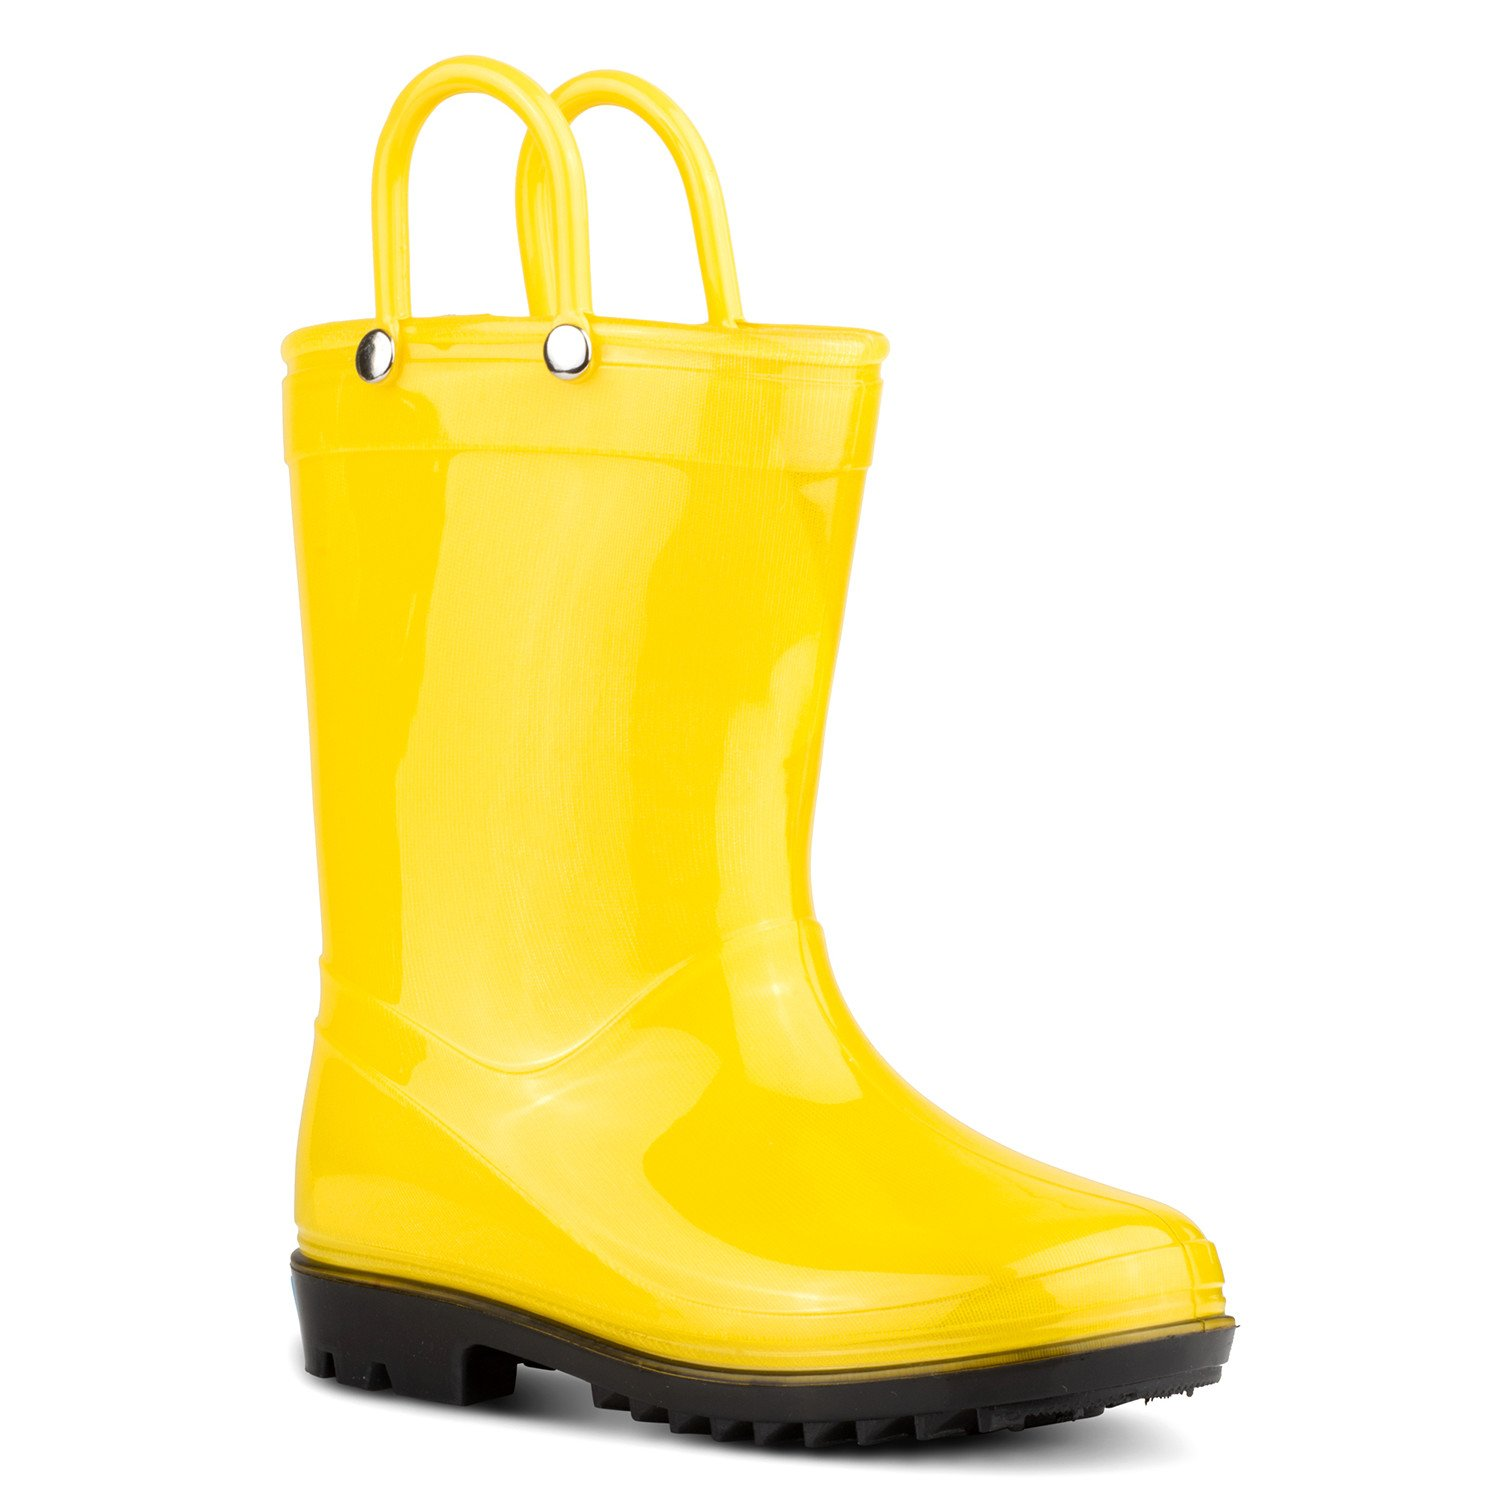 ZOOGS Children's Rain Boots with Handles, Little Kids & Toddlers, Boys & Girls by ZOOGS (Image #1)